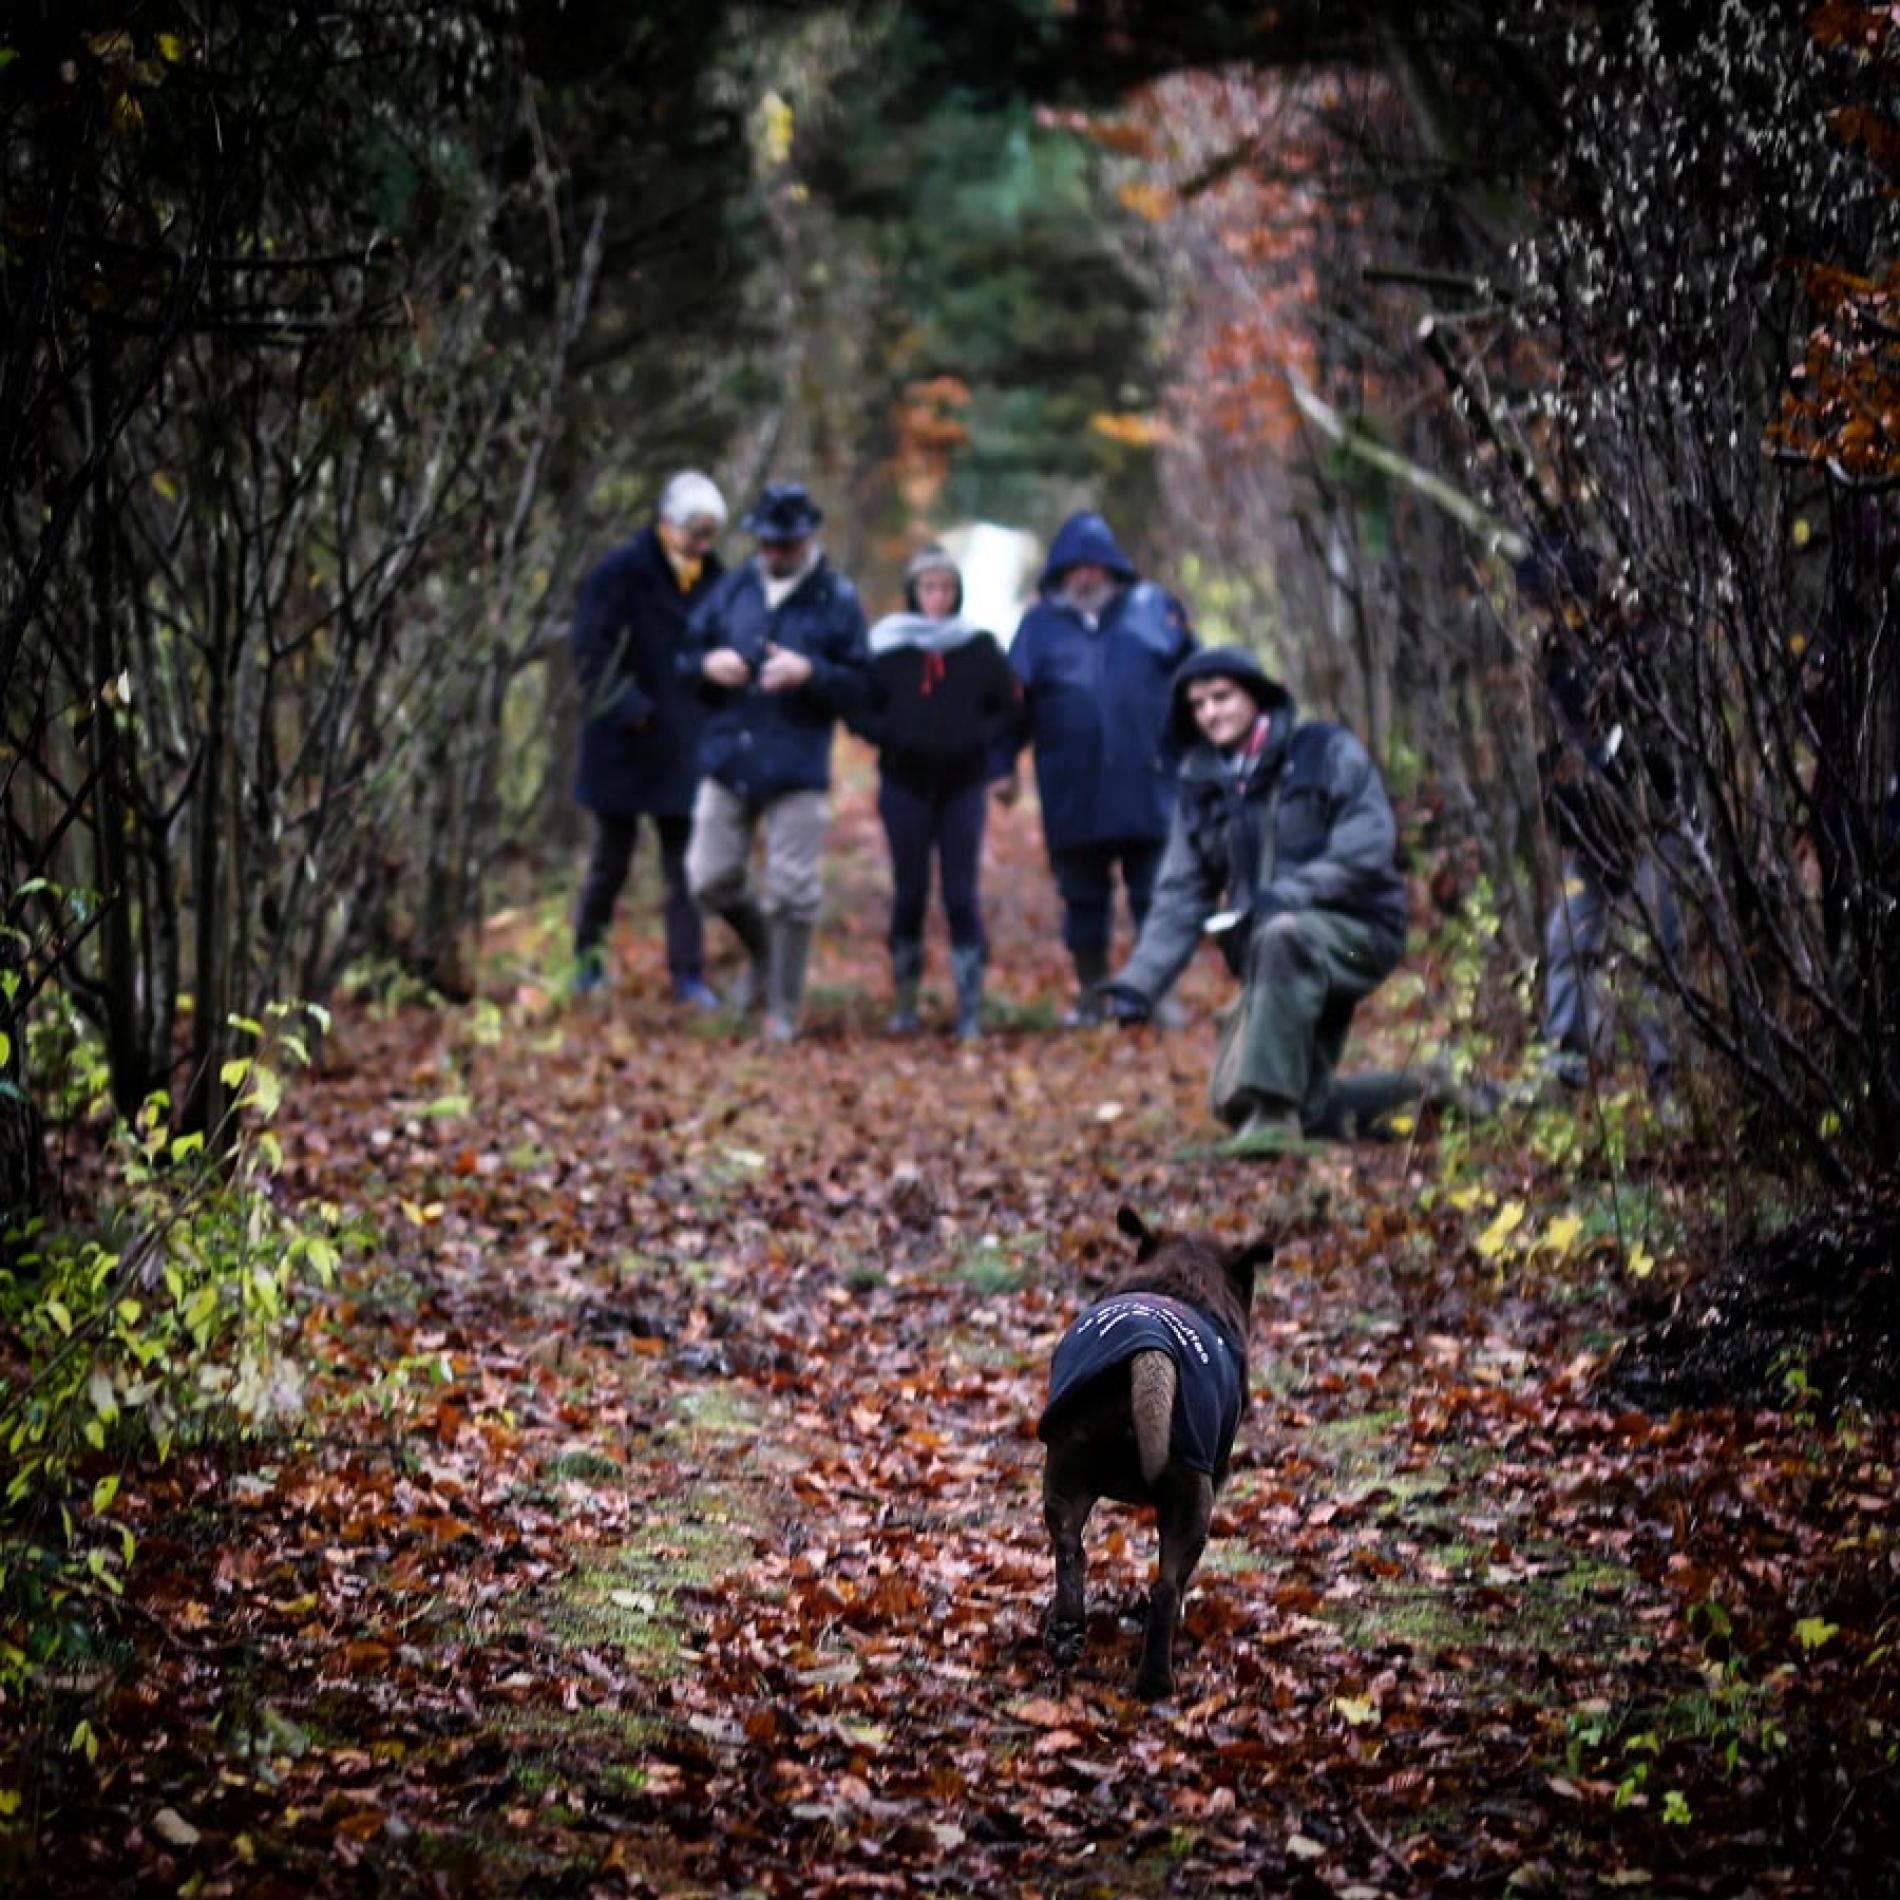 Search for the autumn truffle with our truffle dog